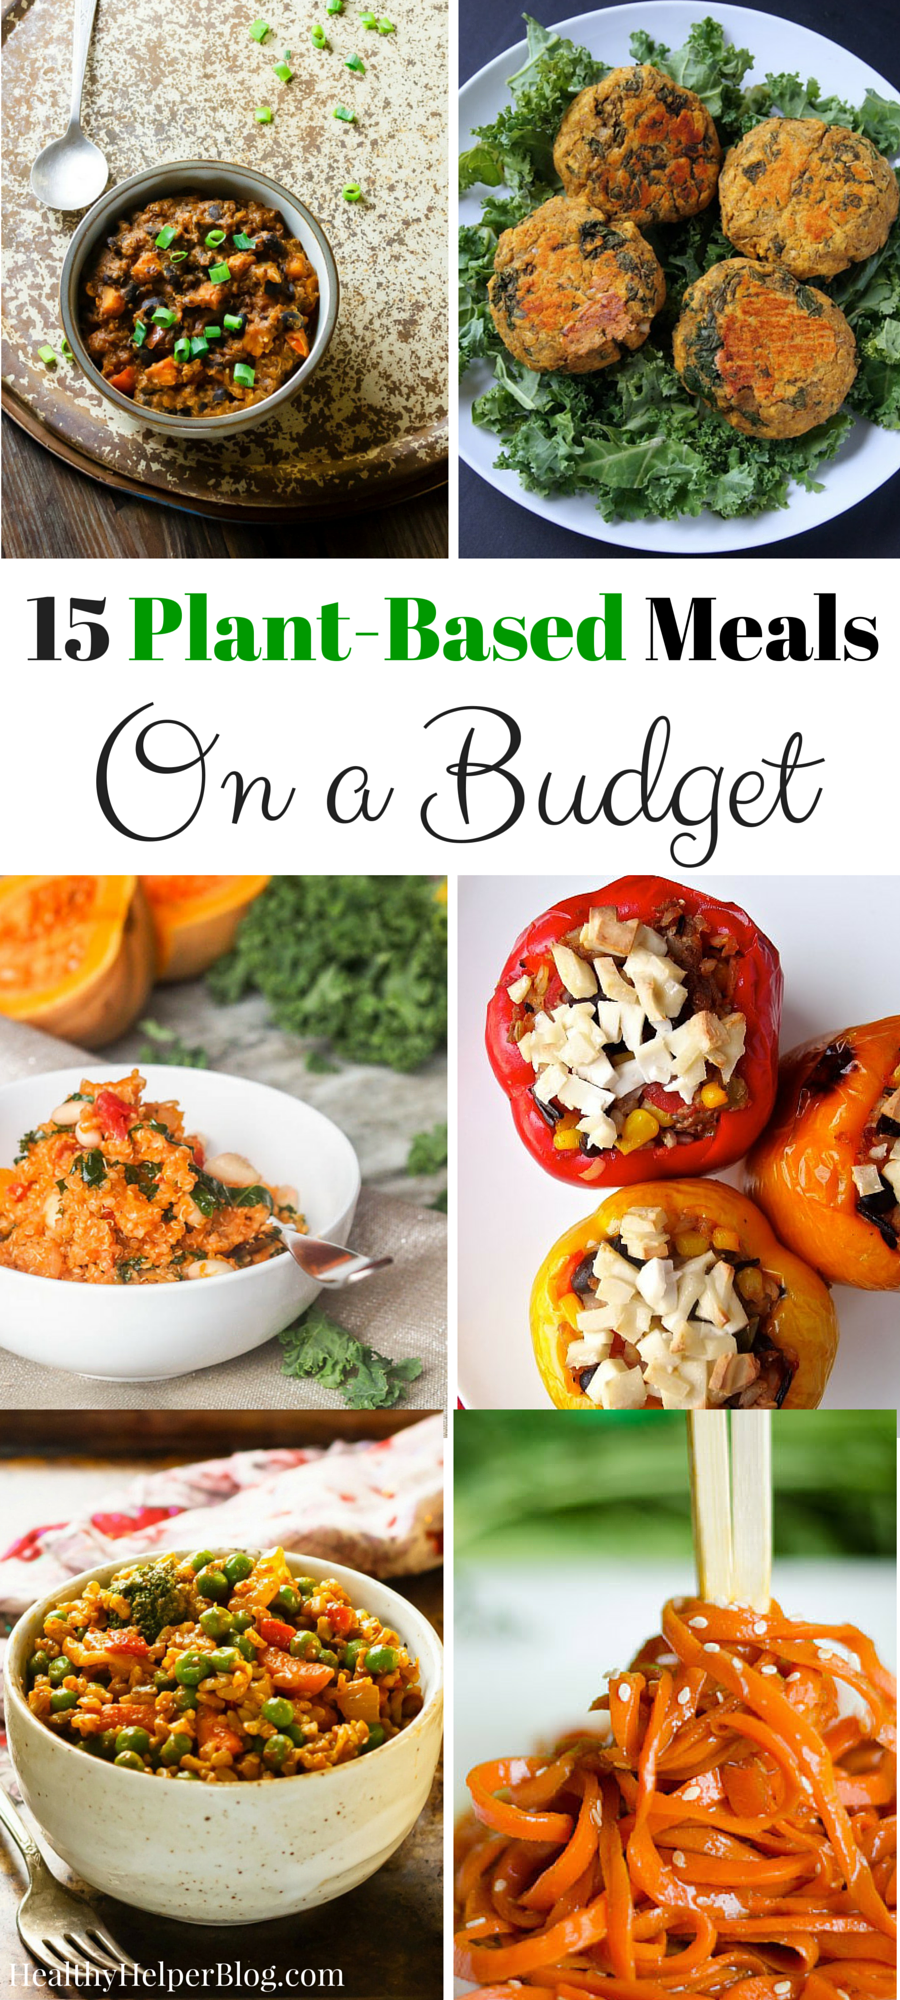 15 plant-based meals on a budget | plant based meals, vegetarian